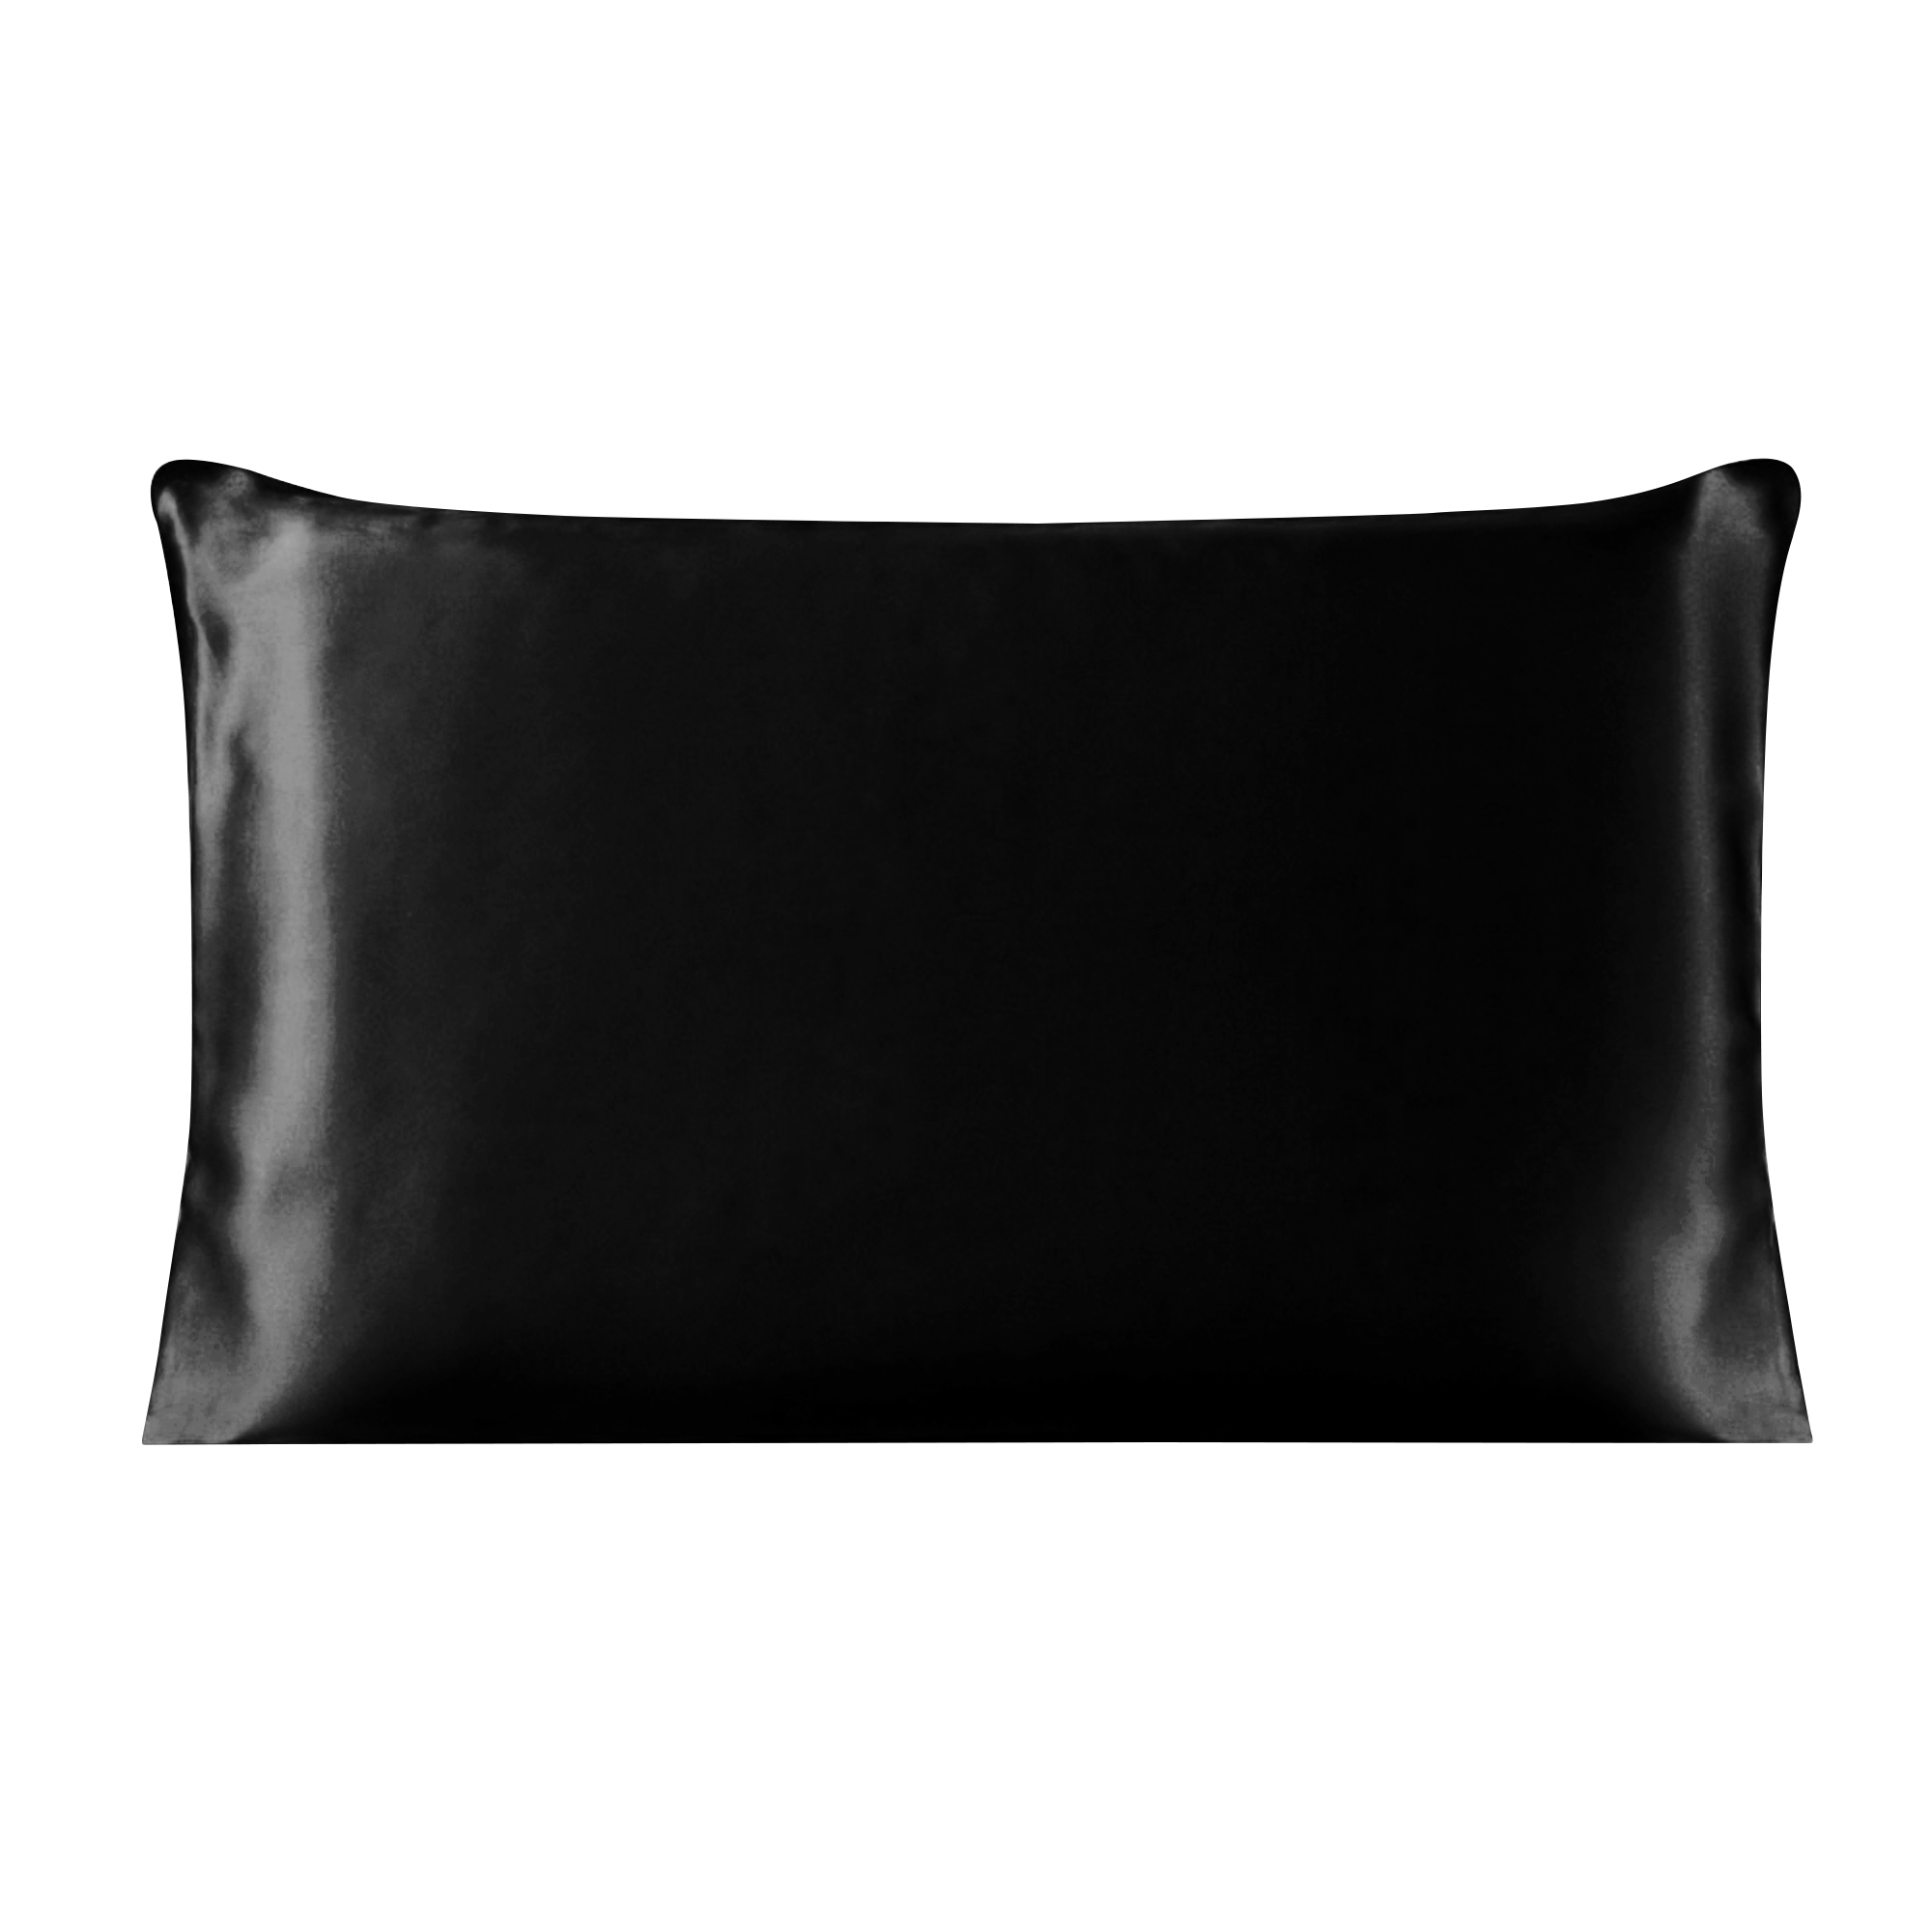 Piccocasa 100% Mulberry Silk Pillow Case Cover Pillowcase Black Queen Size